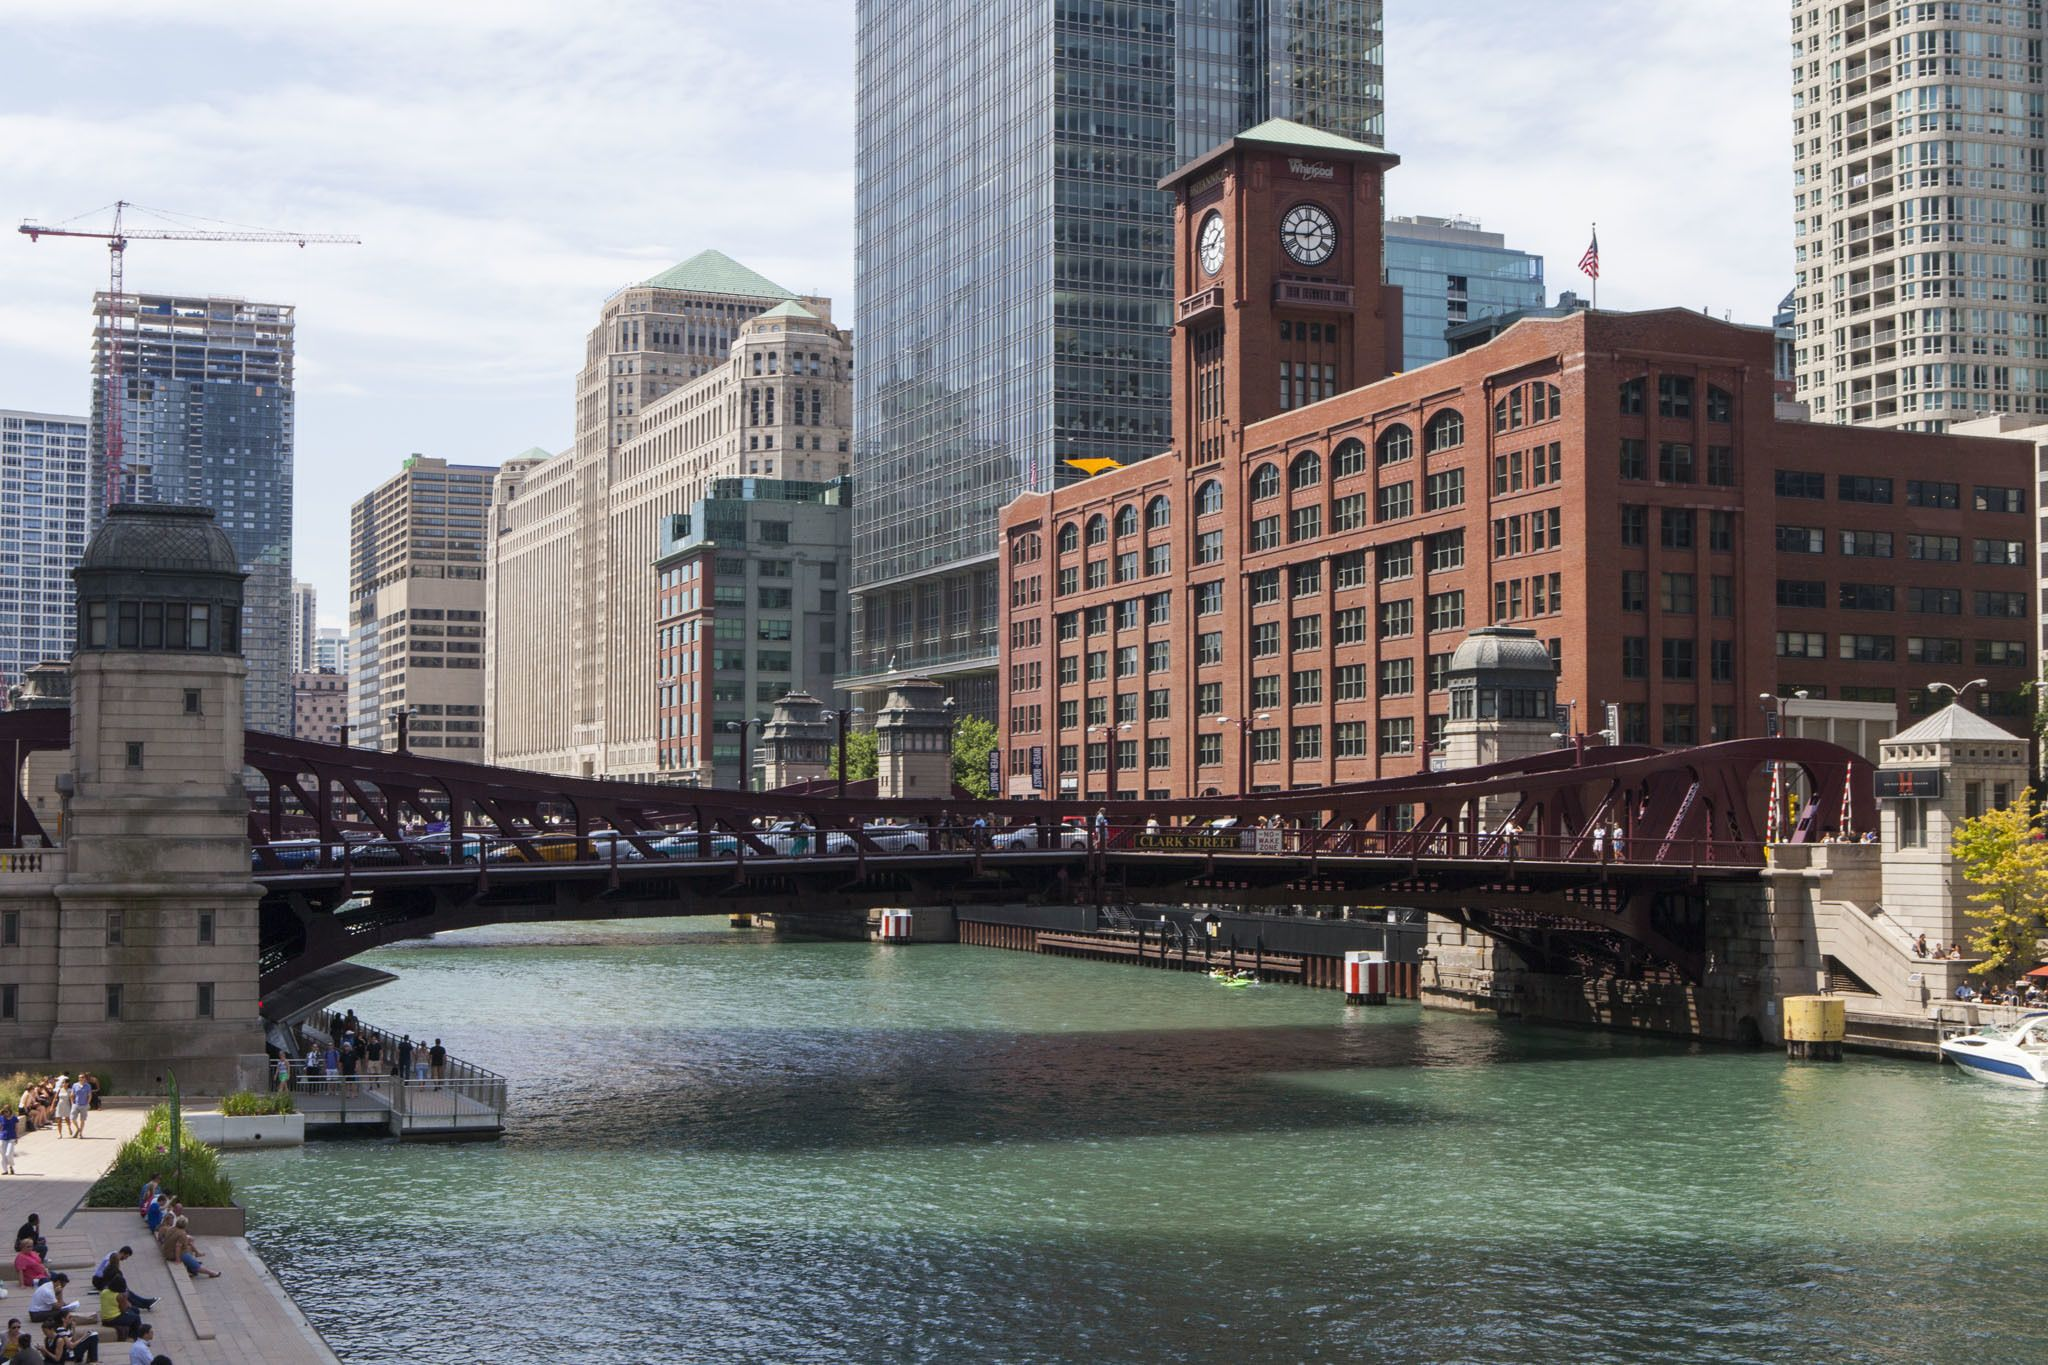 Explore the Near North Side neighborhoods of River North and Streeterville with our guide to the best restaurants, bars and things to do in one of Chicago's most happening areas.